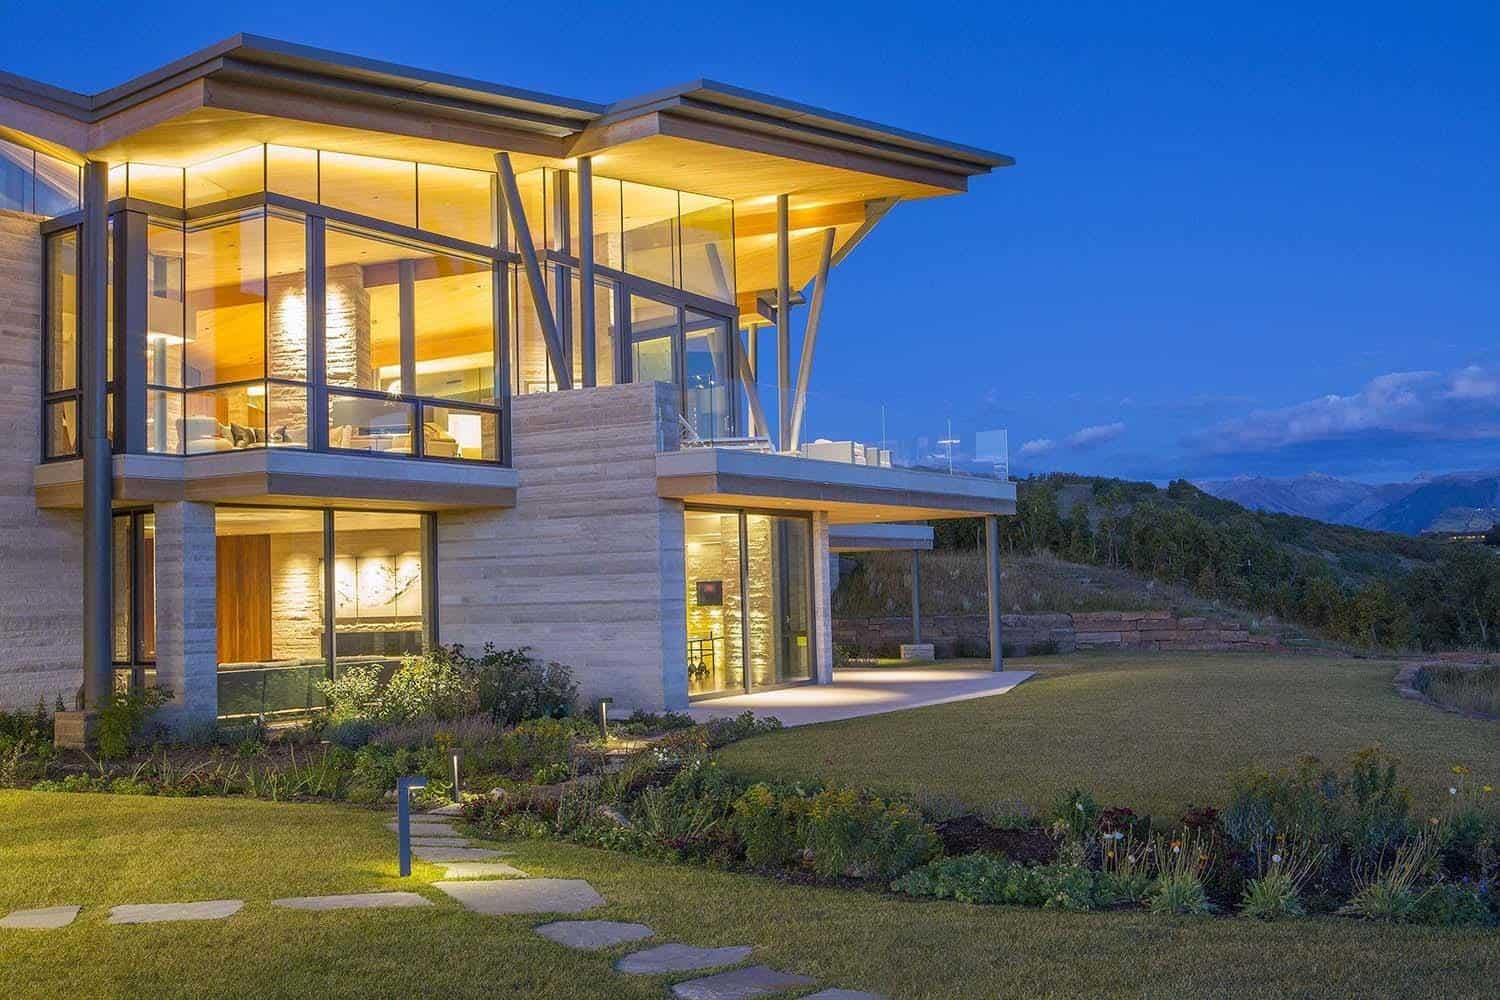 Modern-Residence-Colorado-Poss Architecture-07-1 Kindesign